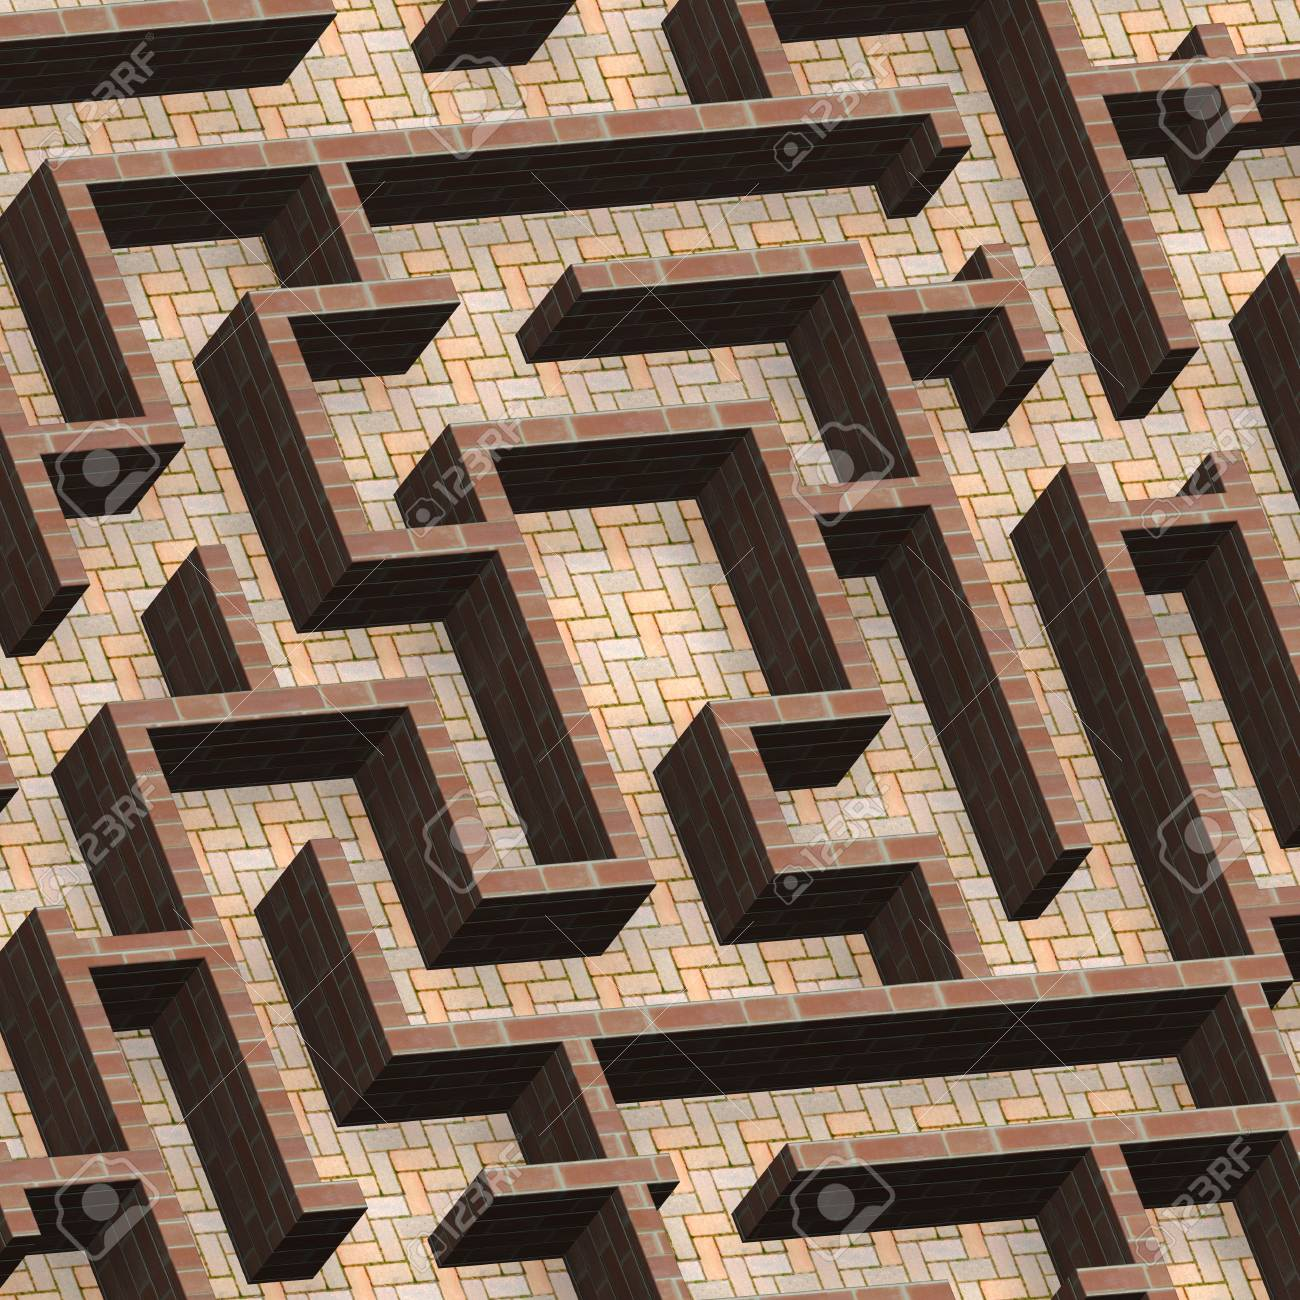 Maze concept. Computer generated 3D photo rendering. Stock Photo - 7999496